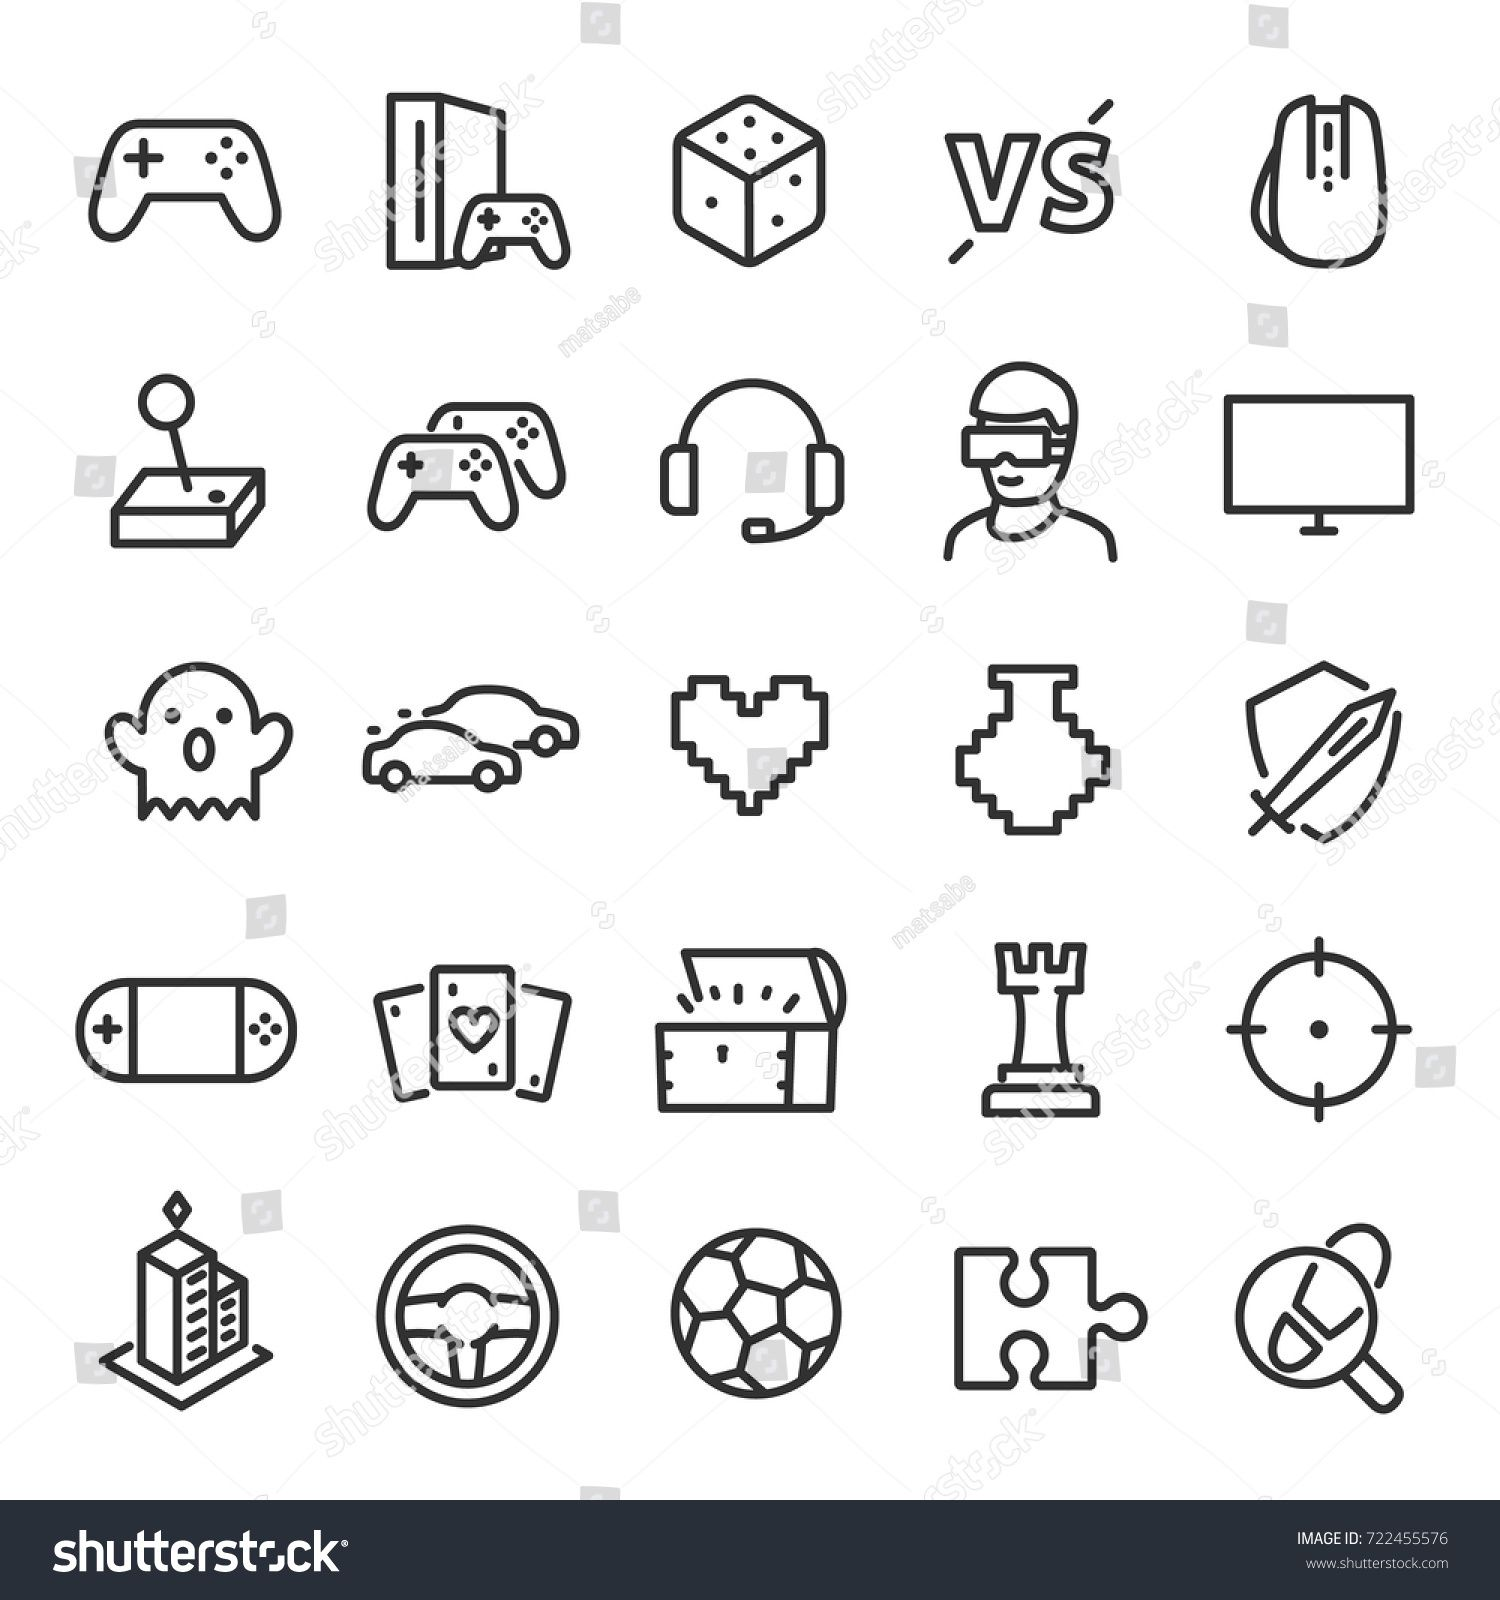 17+ Games icons information